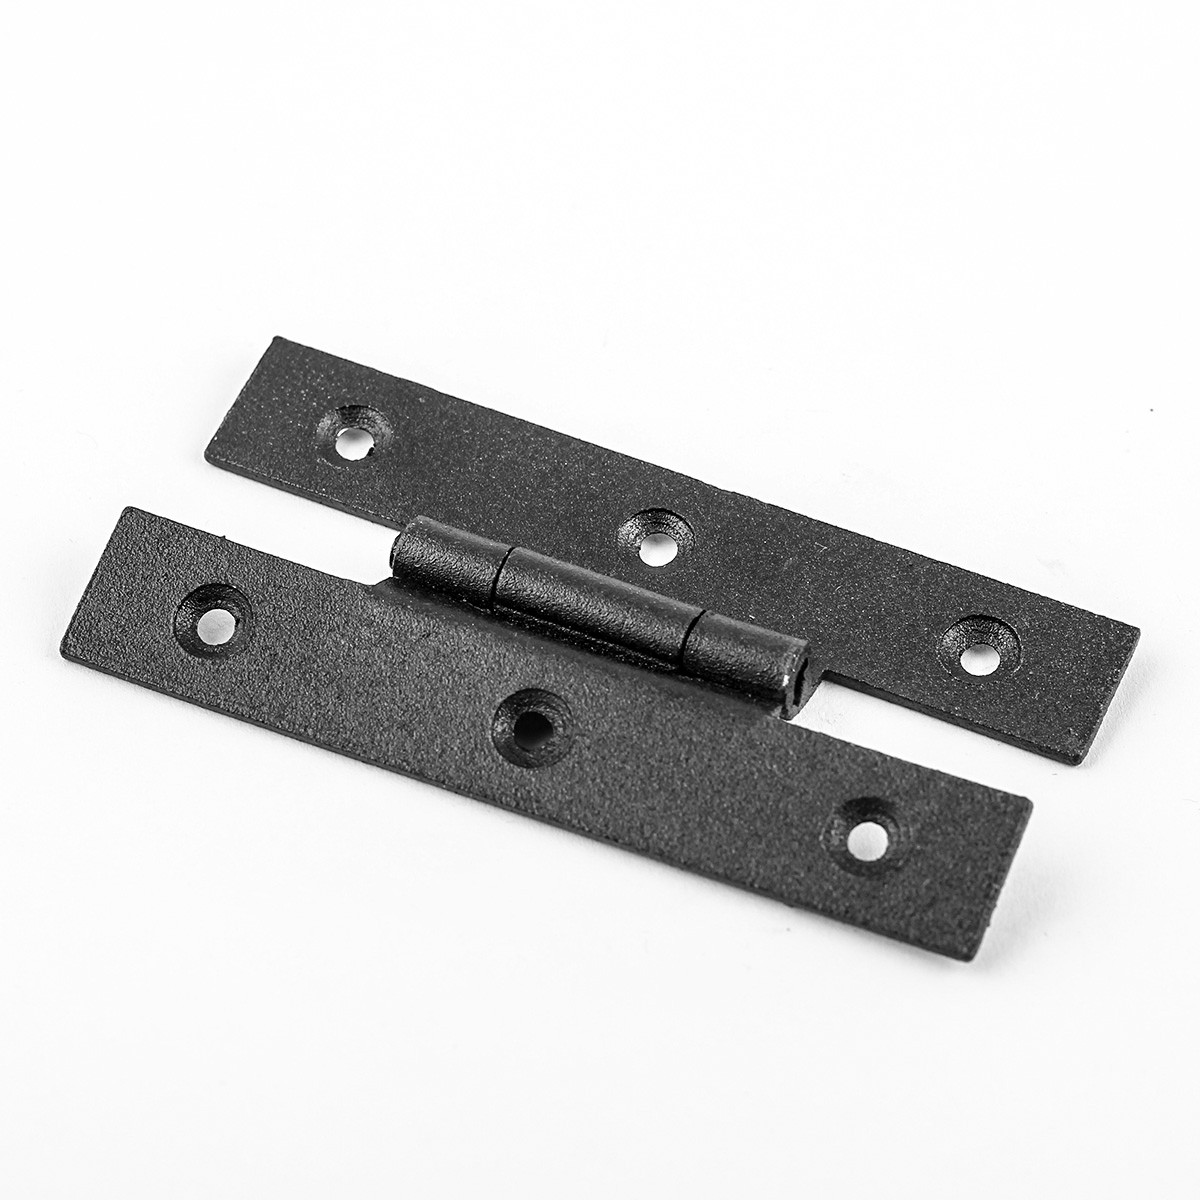 Forged Iron Cabinet Hinge H Style 3.5 inch H w Offset Pack of 6 Door Hinges Door Hinge Solid Brass Hinge